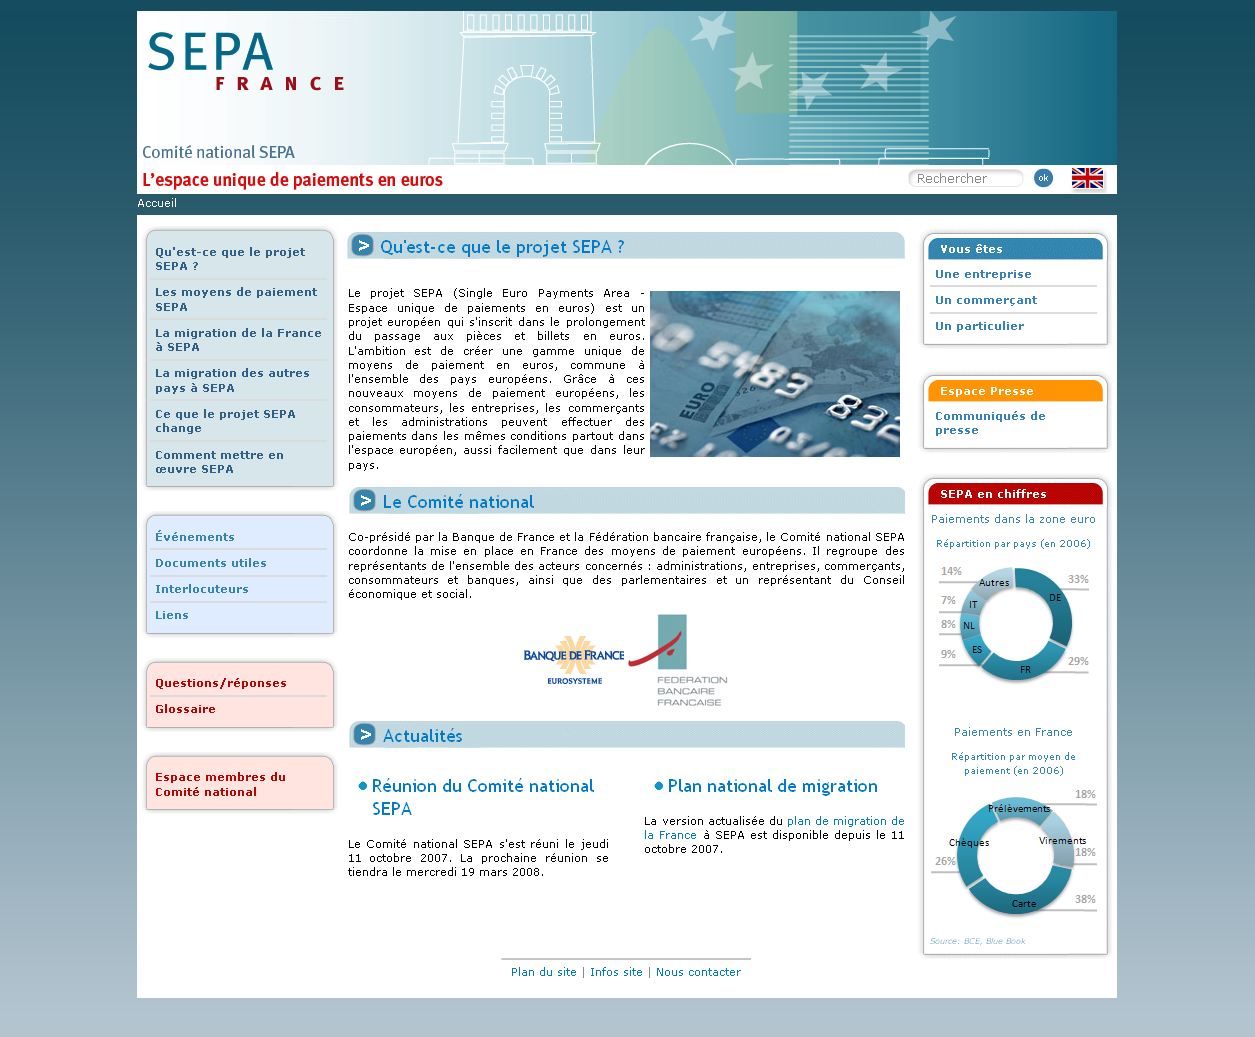 Screenshot du site Internet SEPA